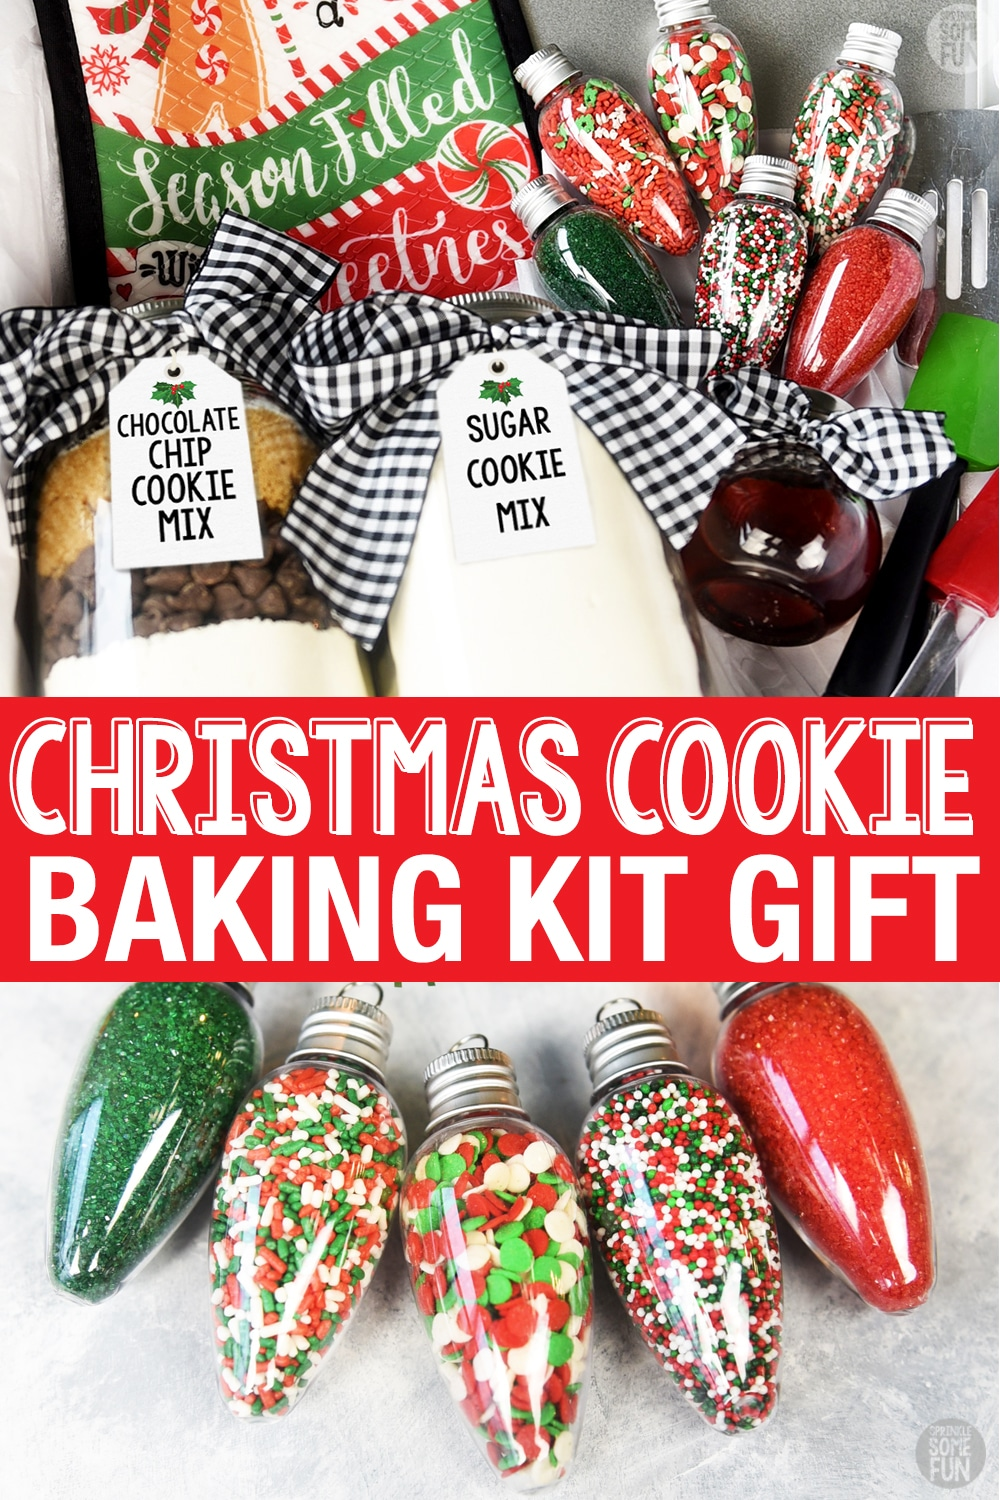 These Christmas Cookie Kits have delicious chocolate chip and sugar cookie mixes with all the tools to bake them inside. Everyone will love all the care that went into finding the ingredients and baking tools included in this baking gift. #BakingGift  #ChristmasCookieKit #ChristmasCookies #Christmasgift #HolidayBakingKit #HolidayGift #BakingGiftBasket #GiftBasket